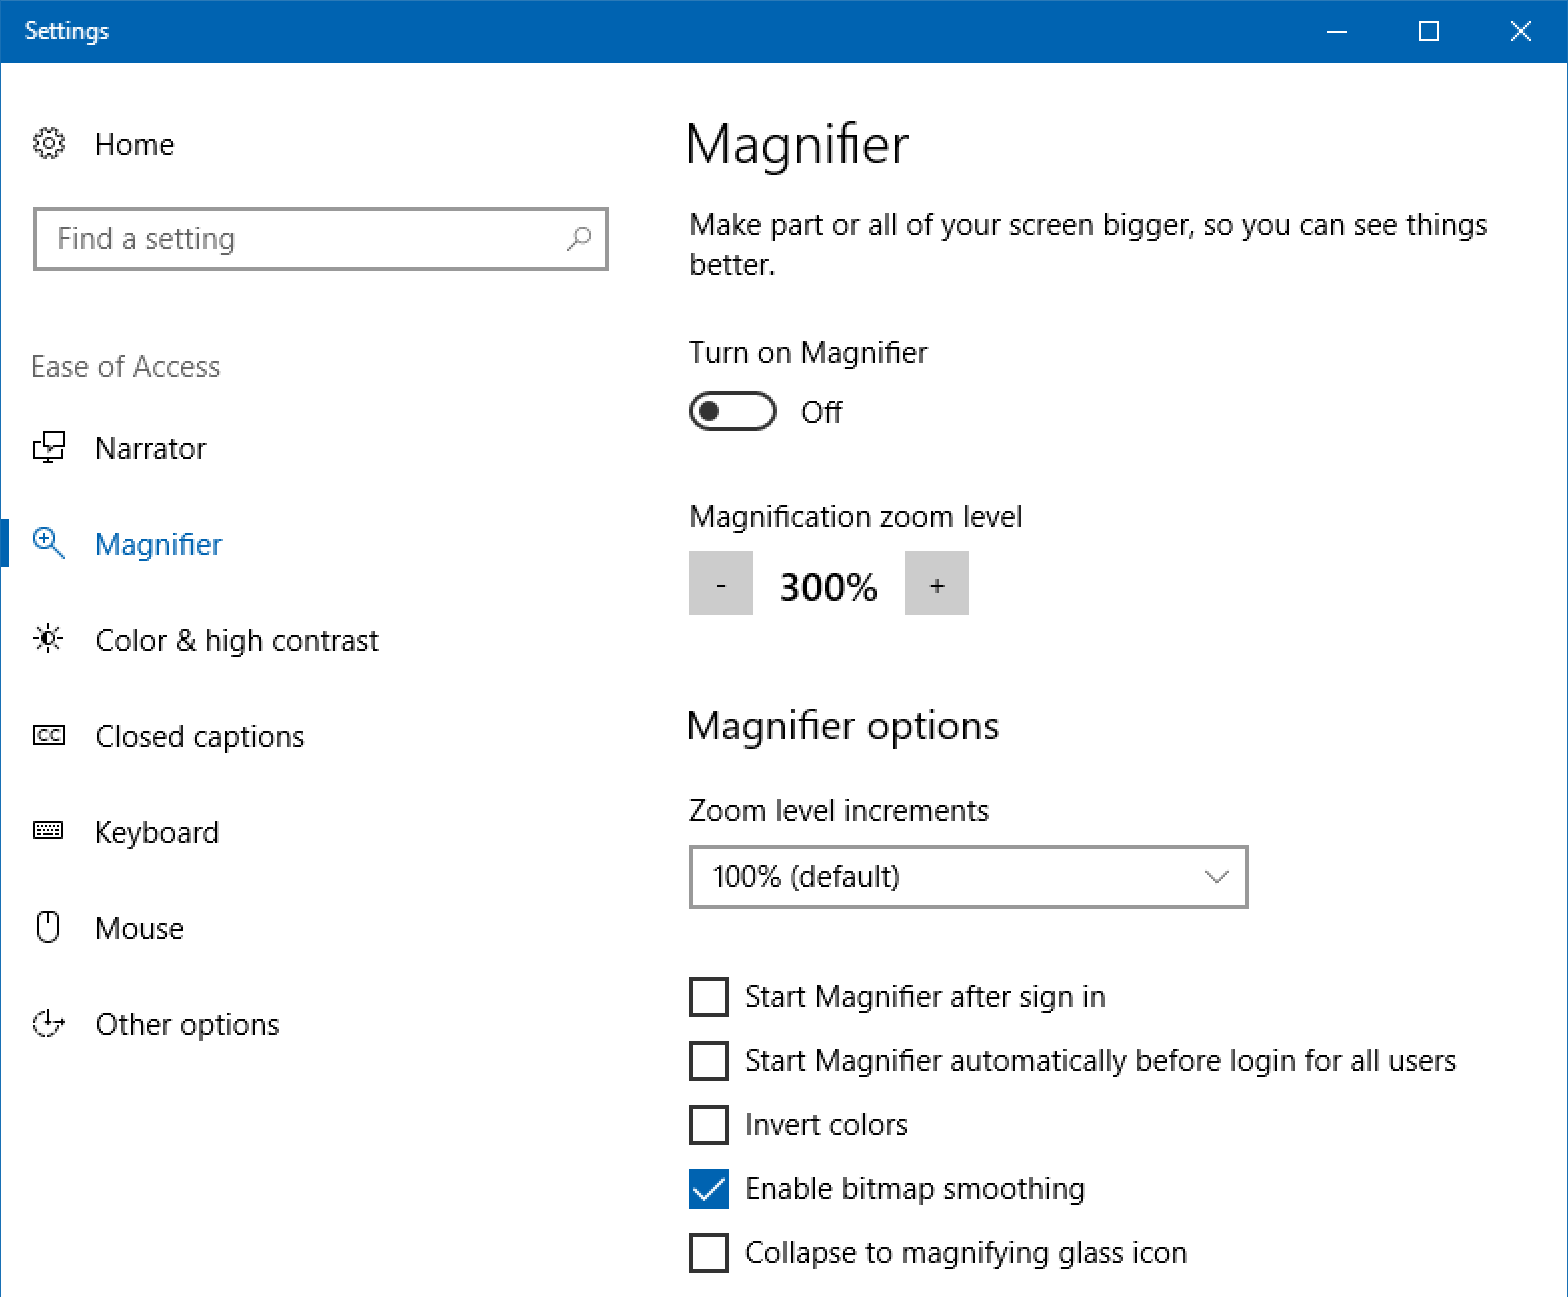 win10 magnifier settings preferences assistive tech